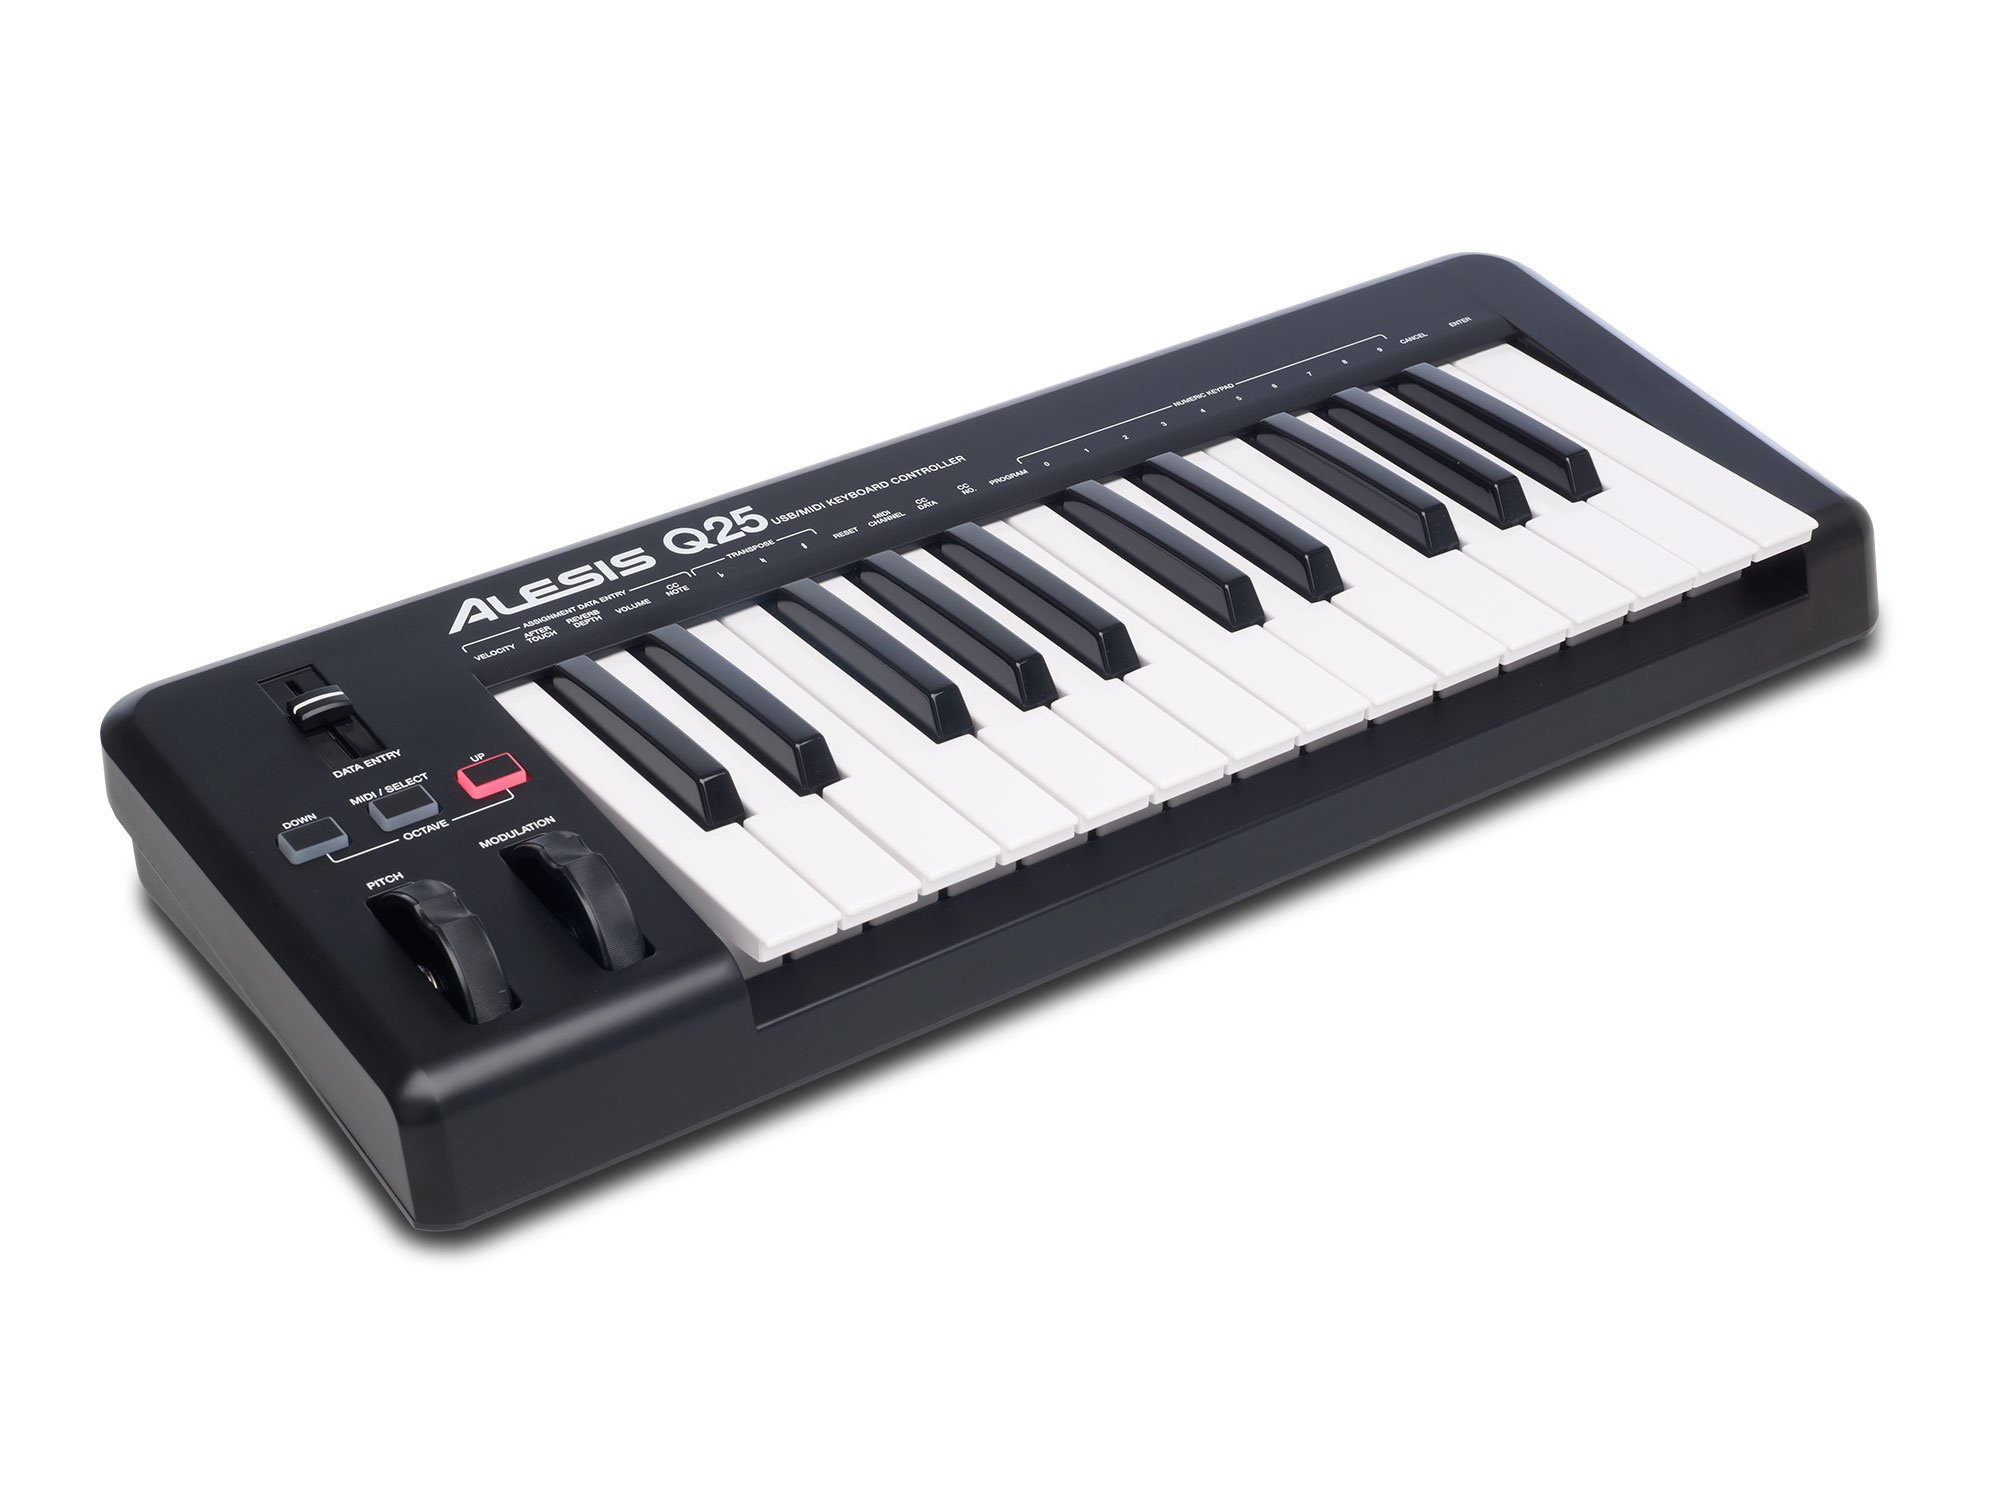 Midi Usb Interface Good Companions For Children As Well As Adults Musical Instruments & Gear Midiman Usb Midisport 2x2 In Great Condition Pro Audio Equipment